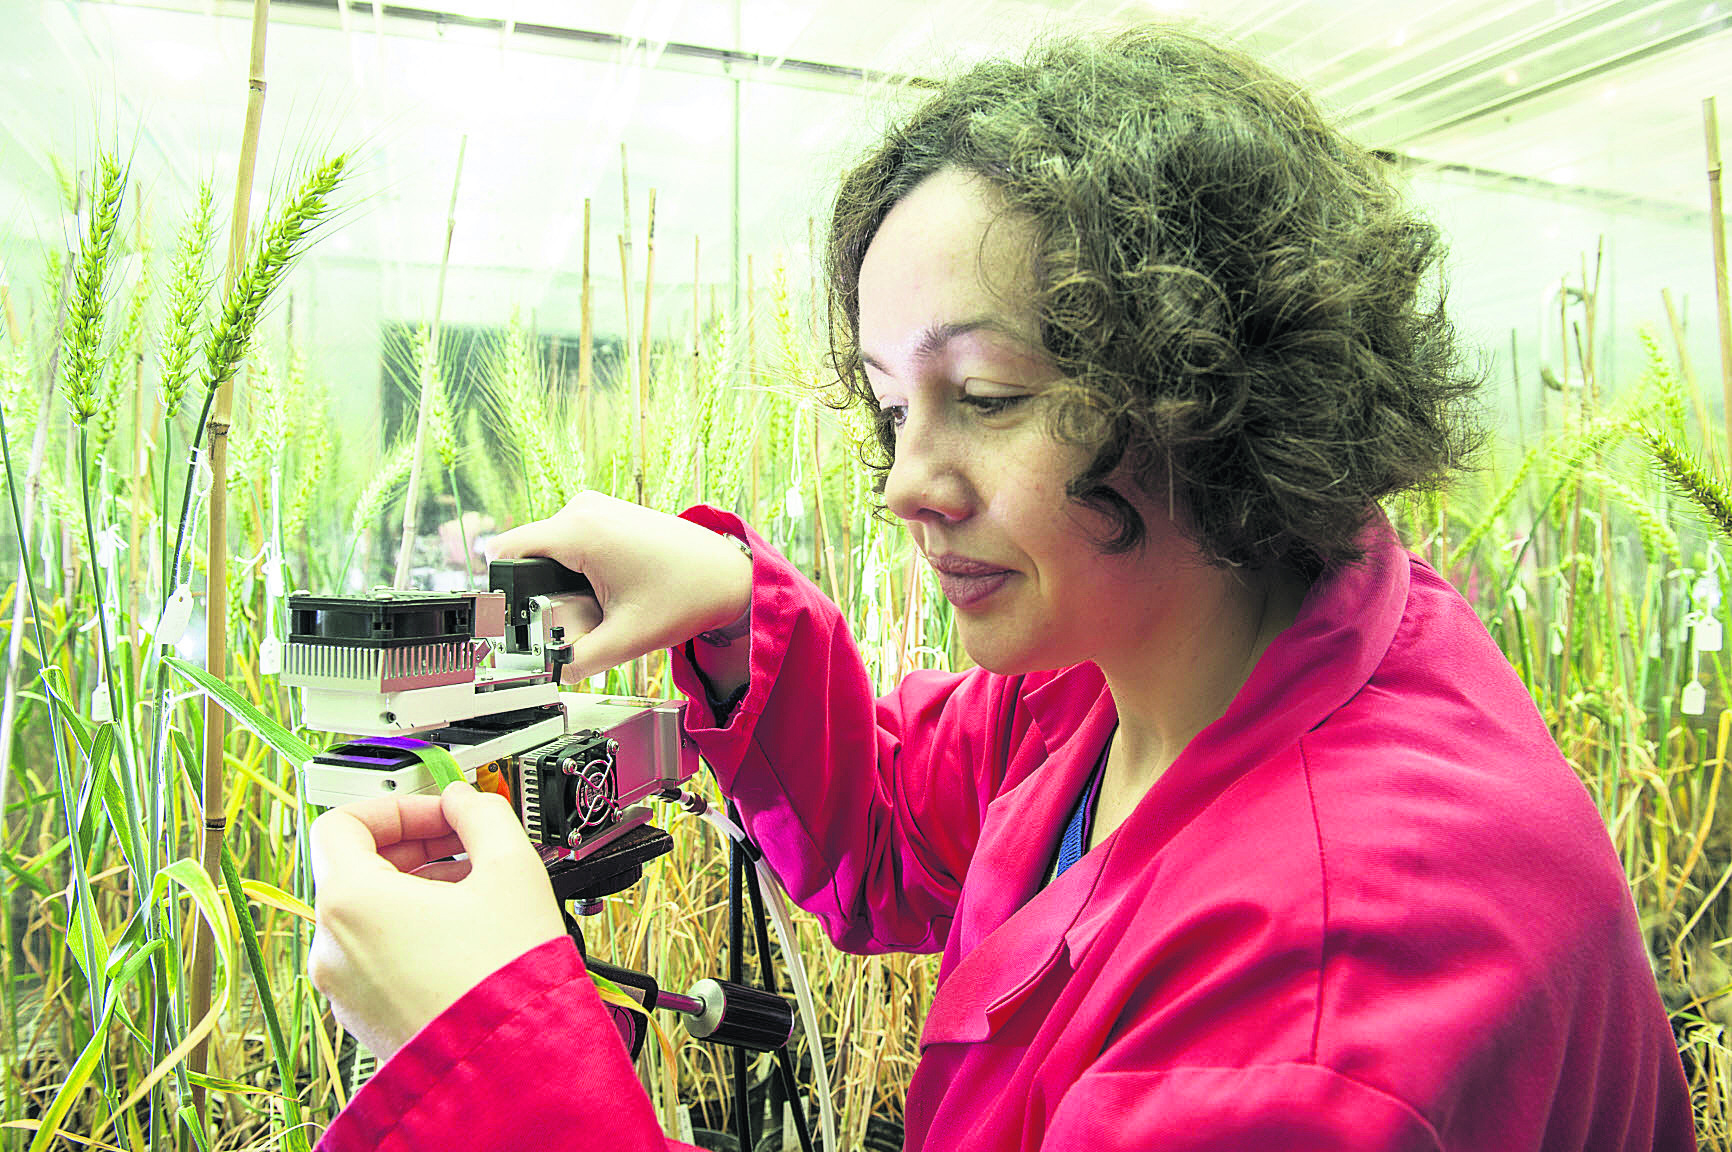 Swindon-born scientist Philippa Borrill, who is working on a project to improve the nutritional content of wheat